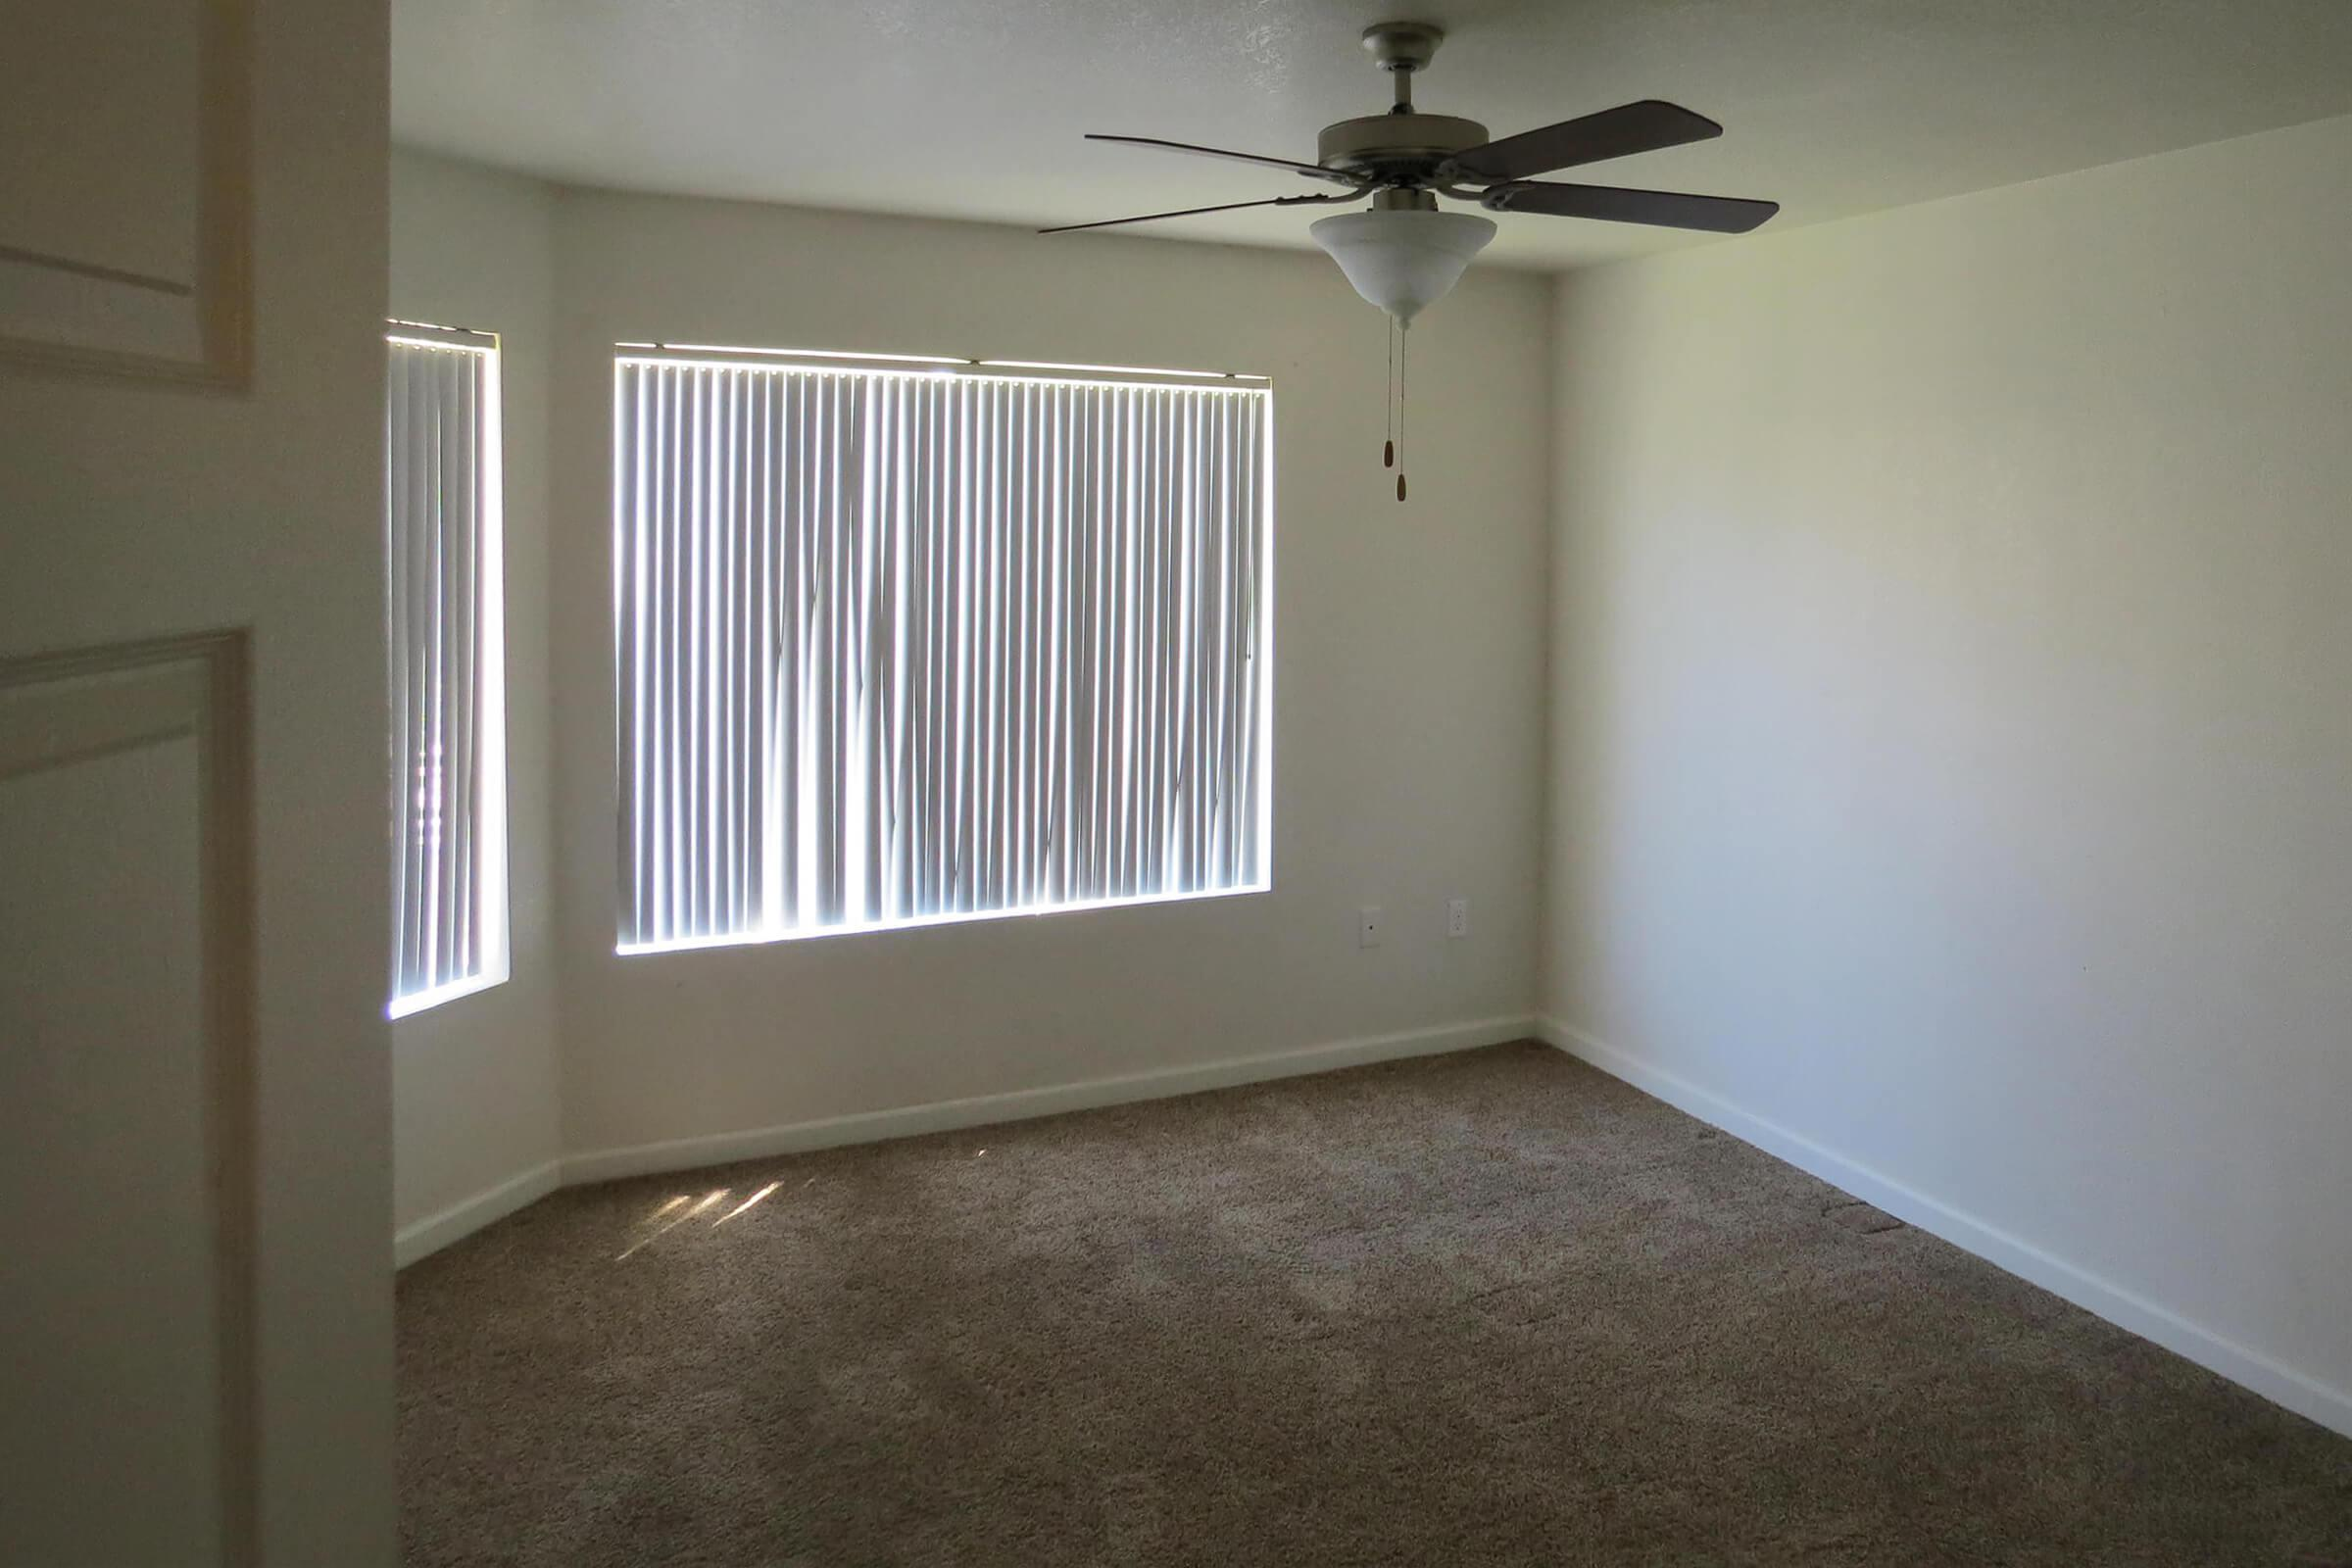 a room with a large window